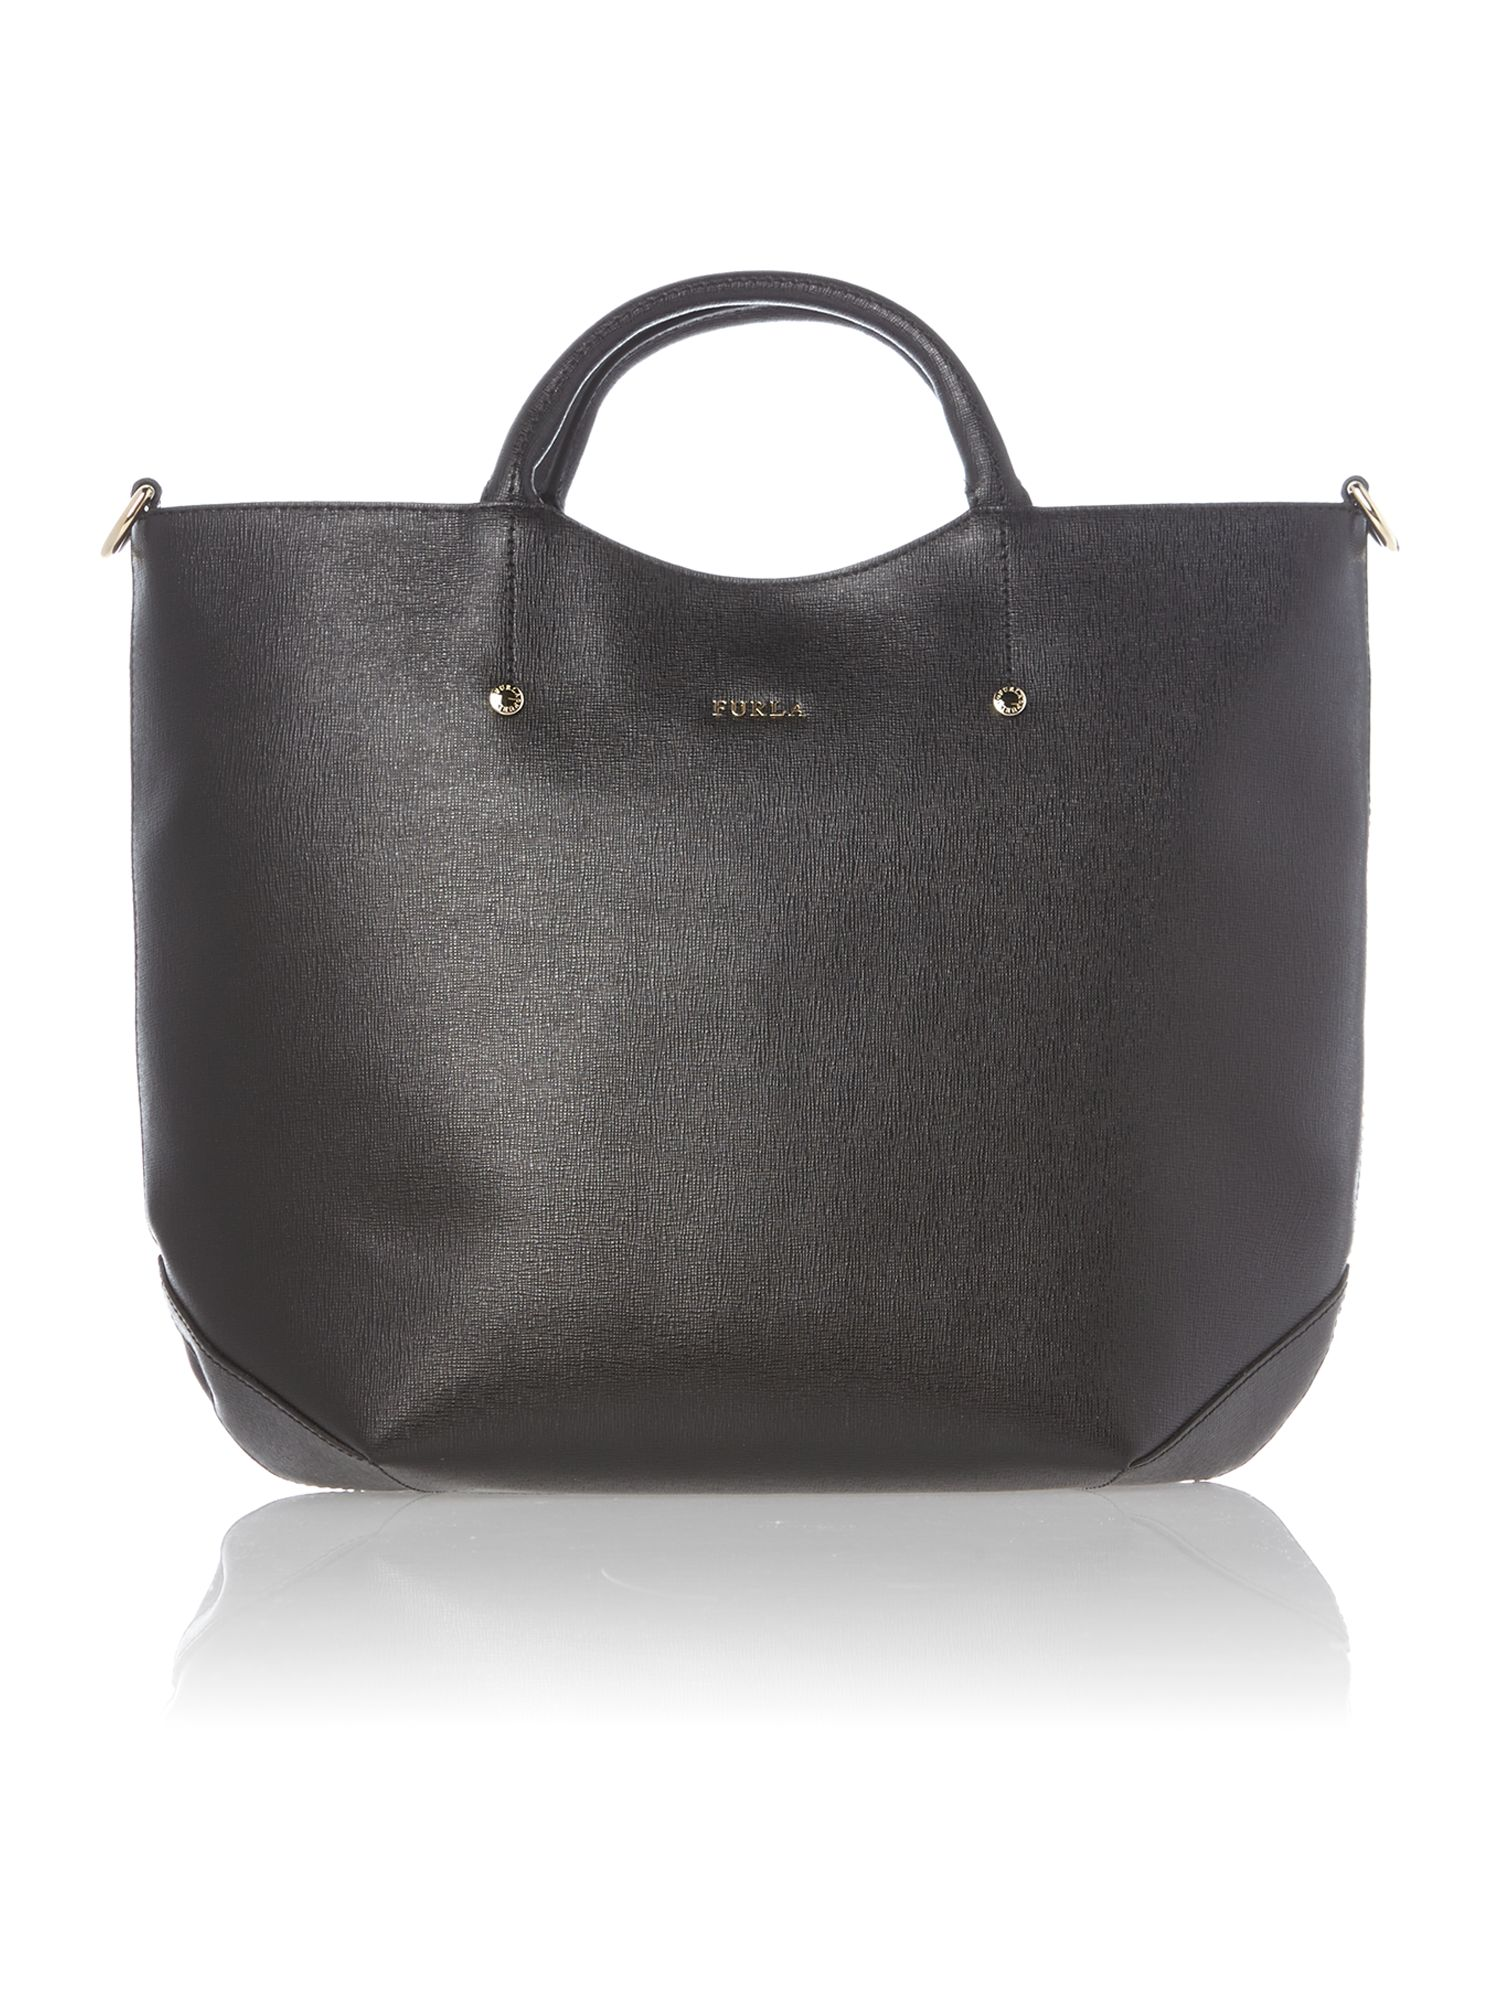 Alissa black medium tote bag